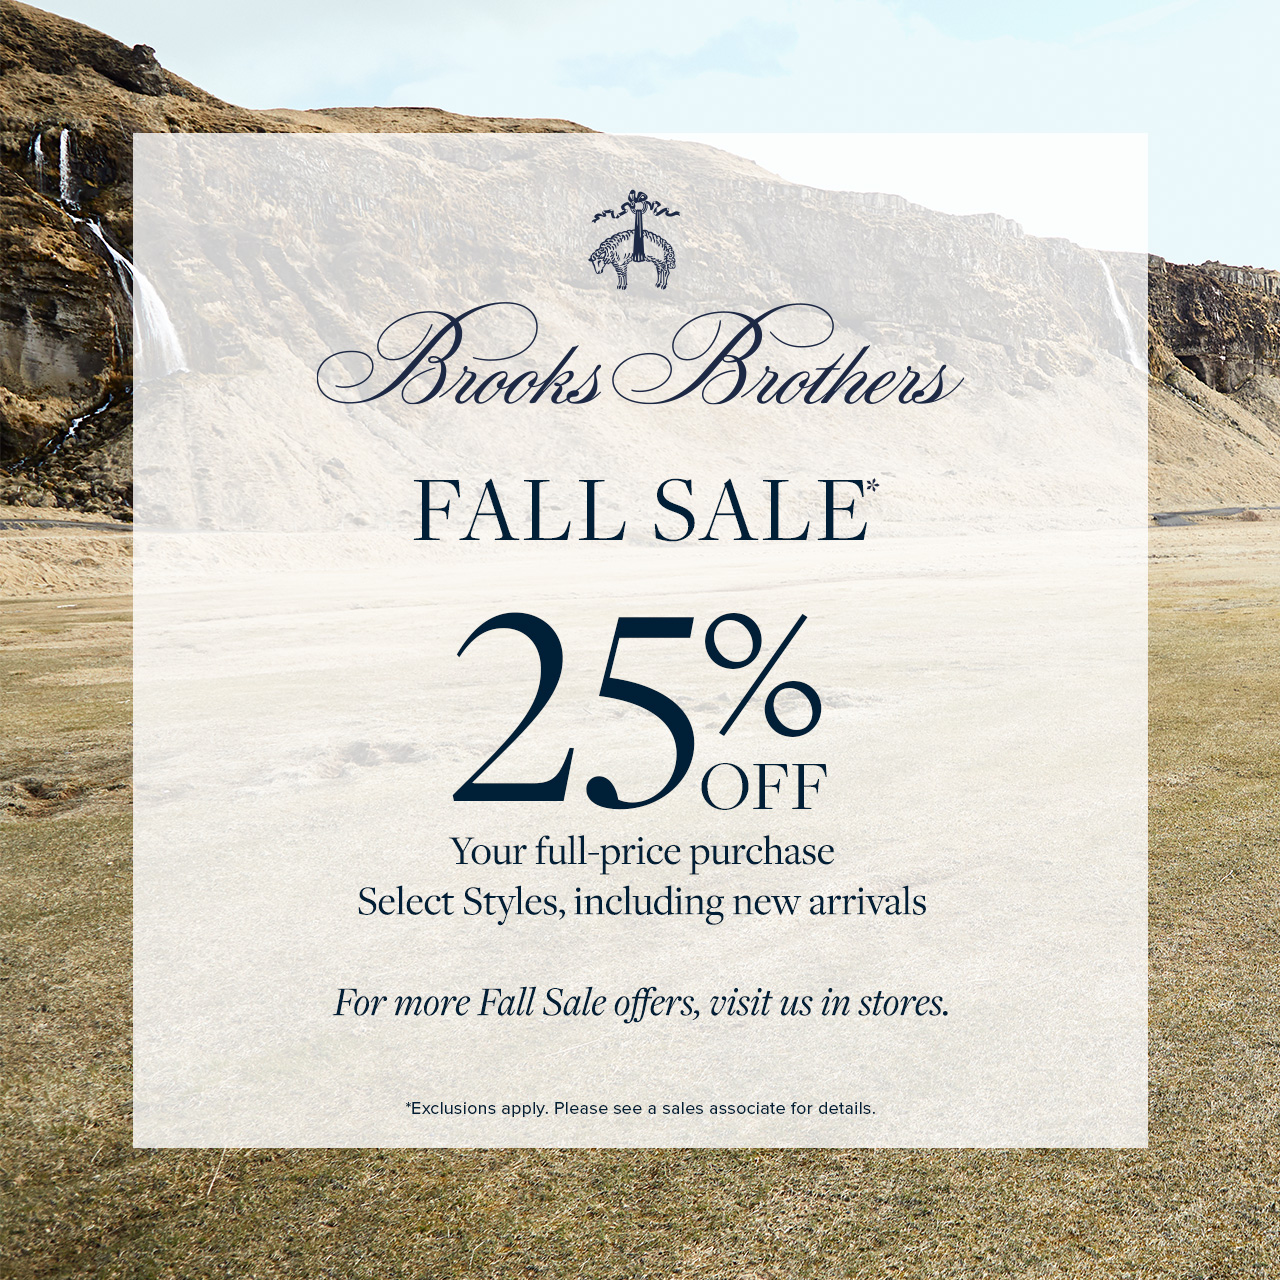 Fall Sale from Brooks Brothers